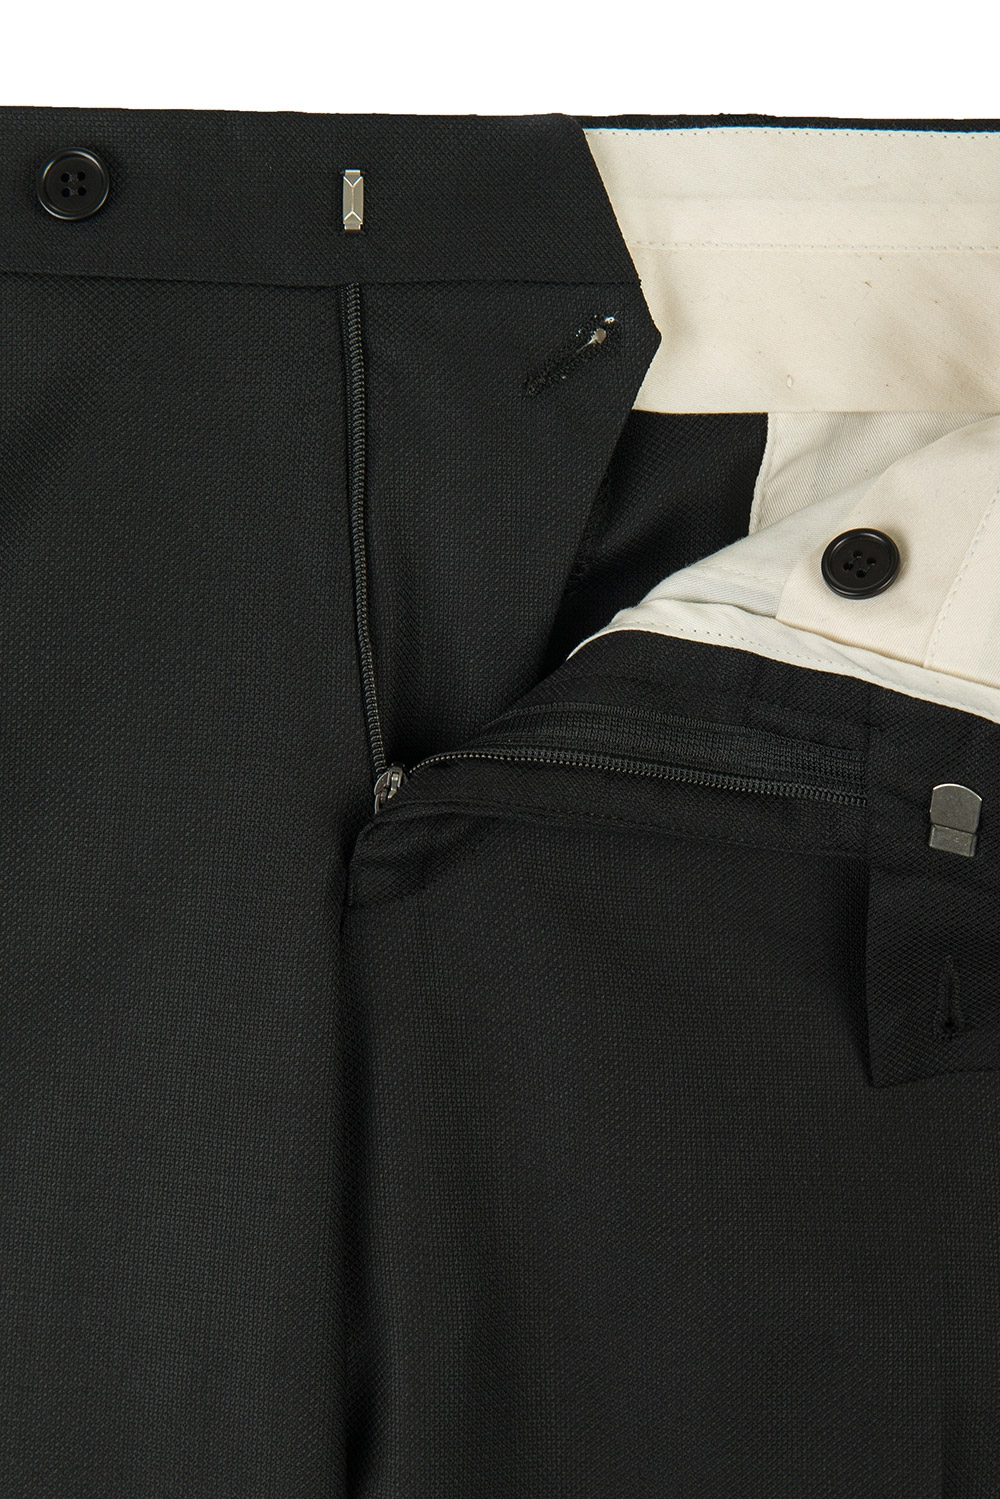 Superslim Black Plain Trouser 1